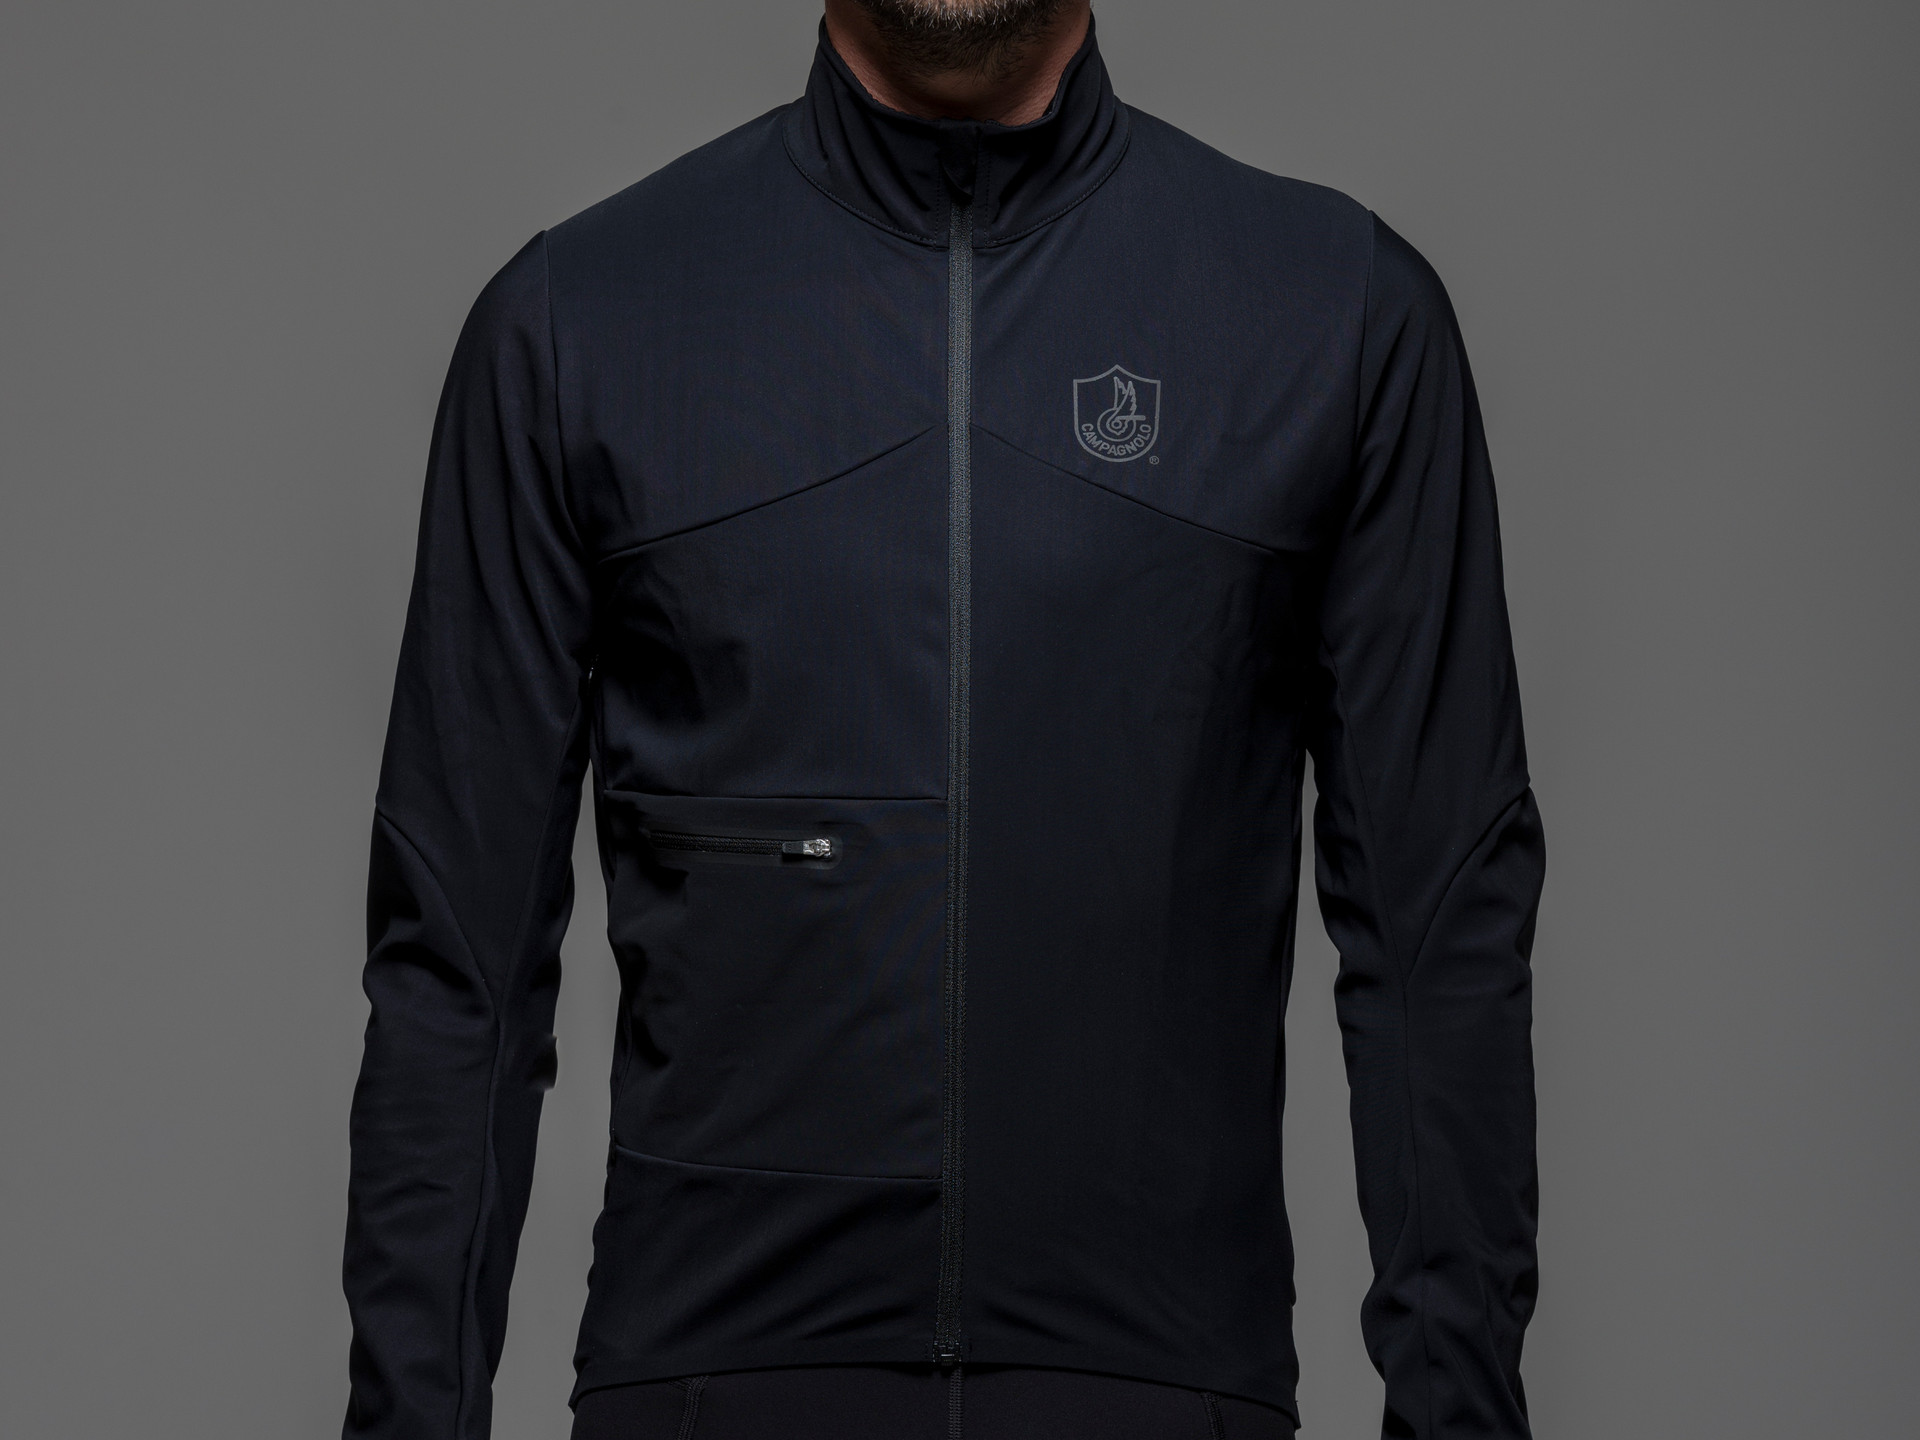 C Tech Winter Jacket Campagnolo Cycling Jackets And Gilet For Men